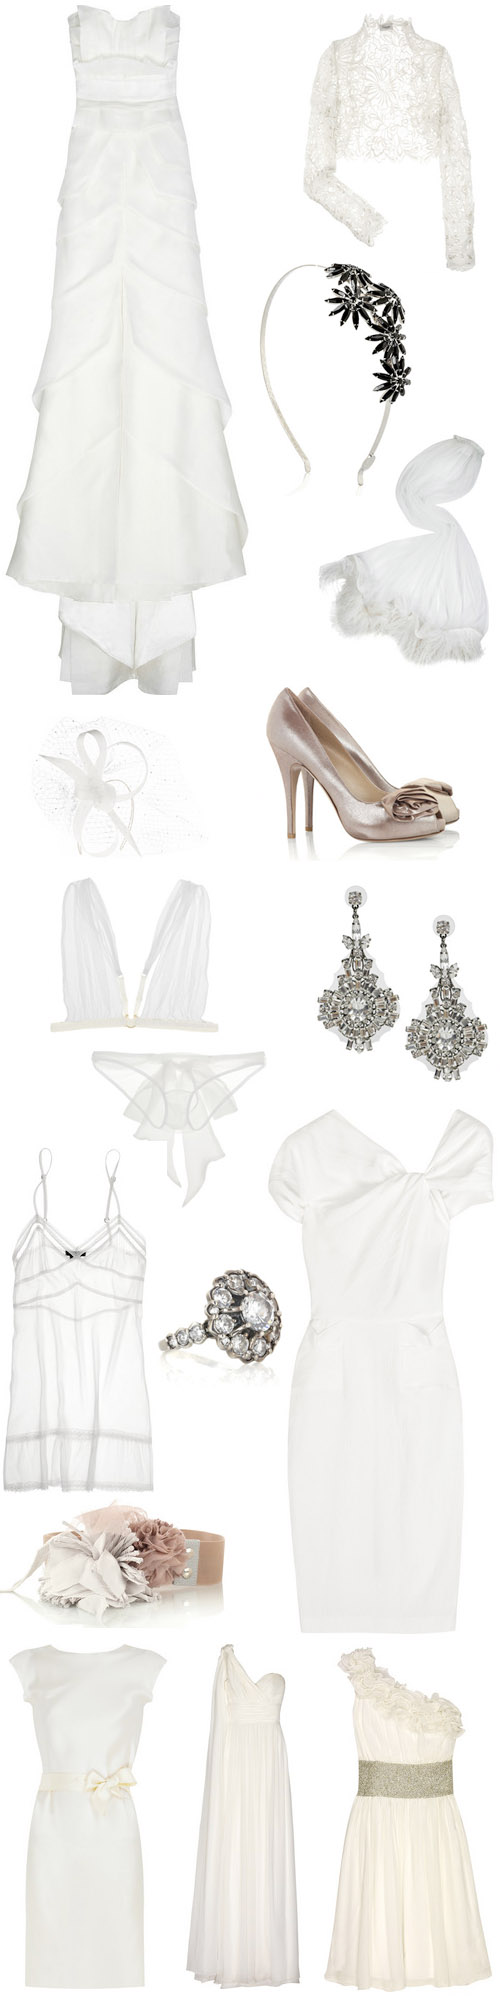 designer wedding fashion shopping online at Net-A-Porter.com, Marchesa, Lanvin, Temperly London, Christian Louboutin